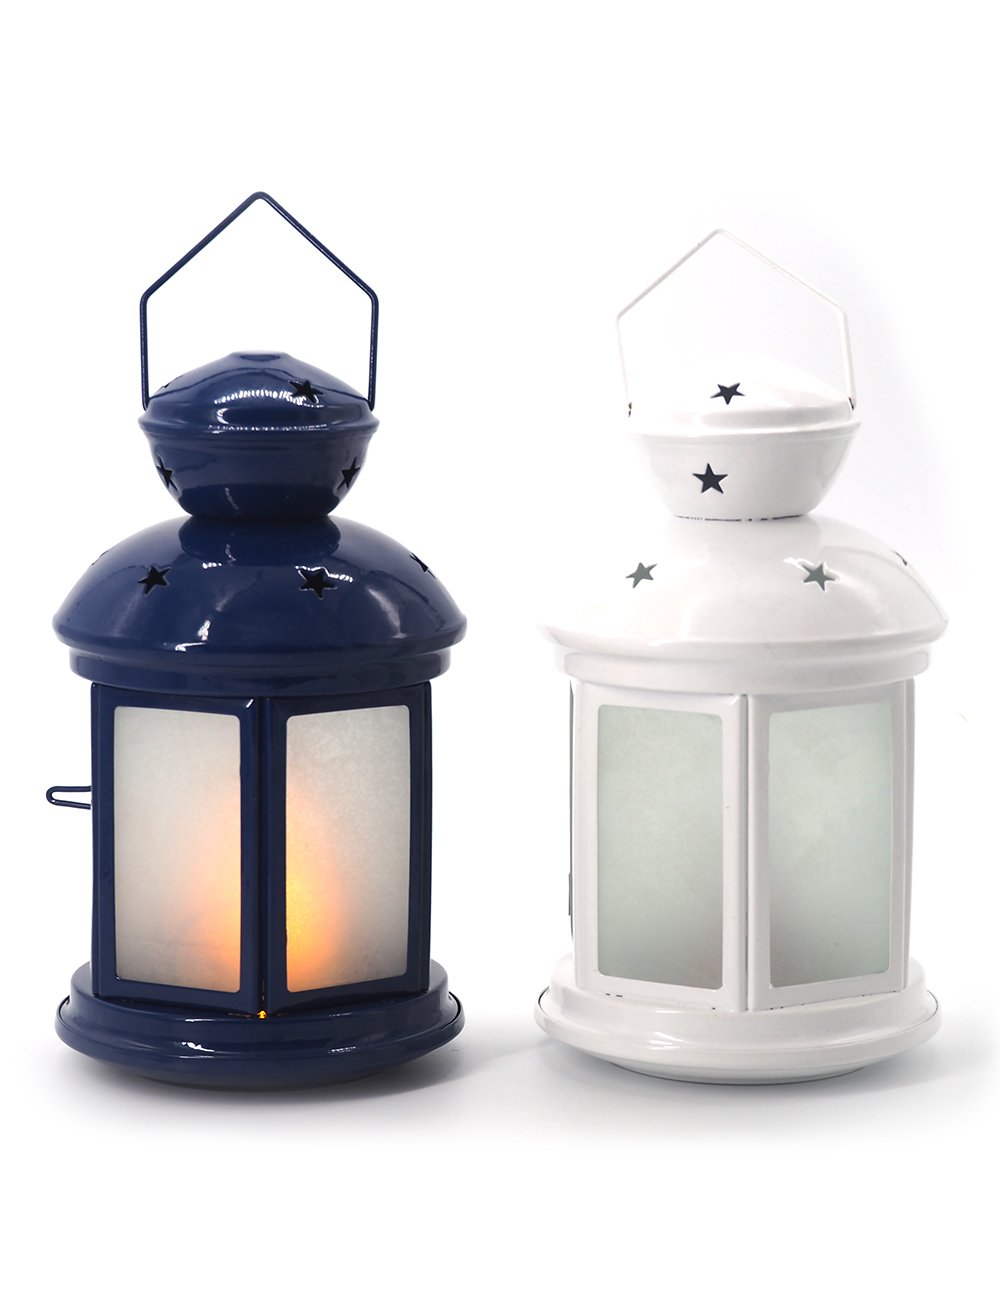 HomeBerry Decorative Hanging Lantern,Hexagon Style,Table Lamp and Desk Lamp, Battery Operated with Fire Glow flickering flame LED candle,Indoor-Outdoor Use. (Blue) Xiamen Henry Arts Co Ltd